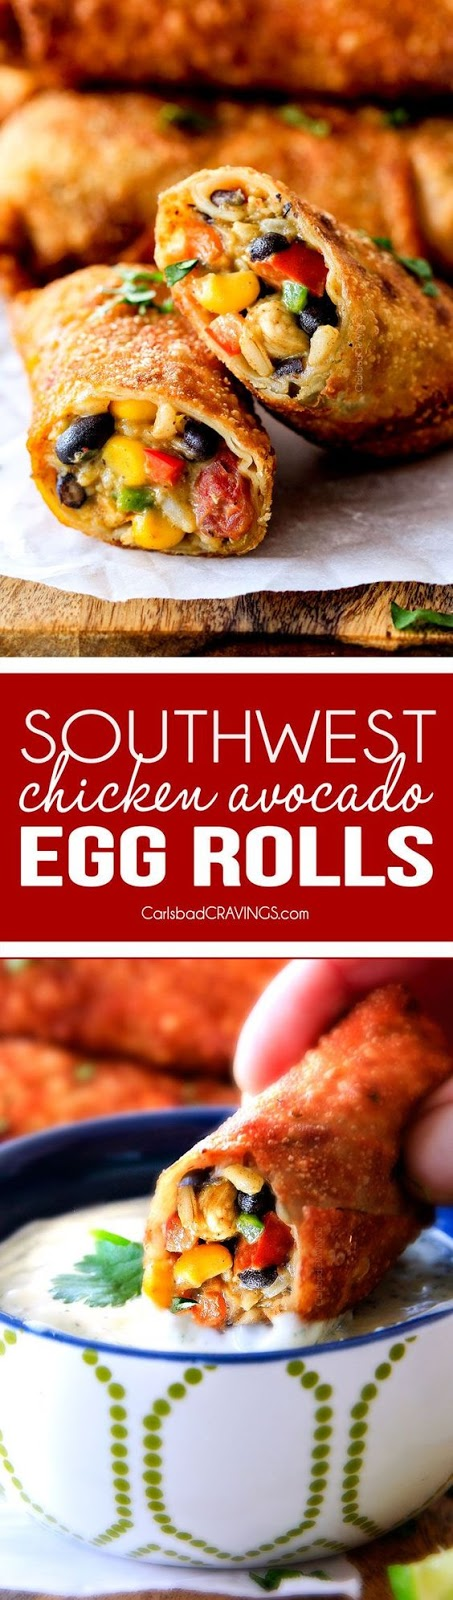 Southwest Egg Rolls with Chicken, Cheese and Avocado